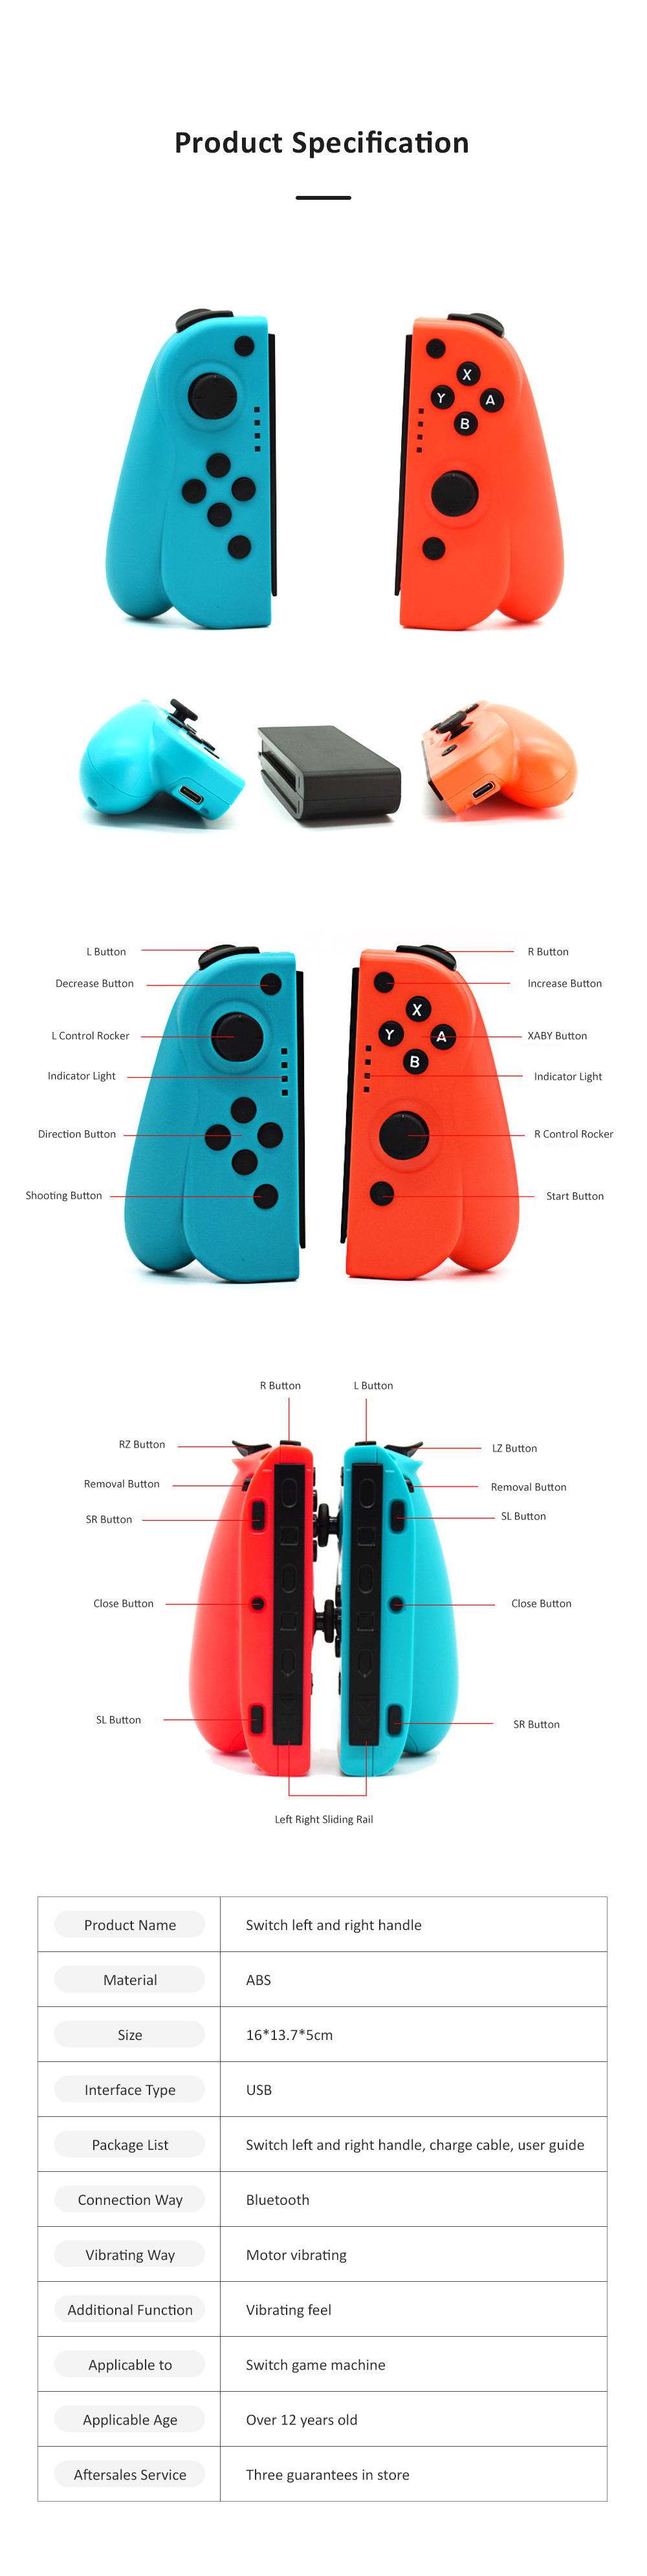 Left and Right Bluetooth Game Handle for Switch Game Machine Separated Repeating Vibrating Game Controller Wireless Joy-con Screen Shot Handles 9